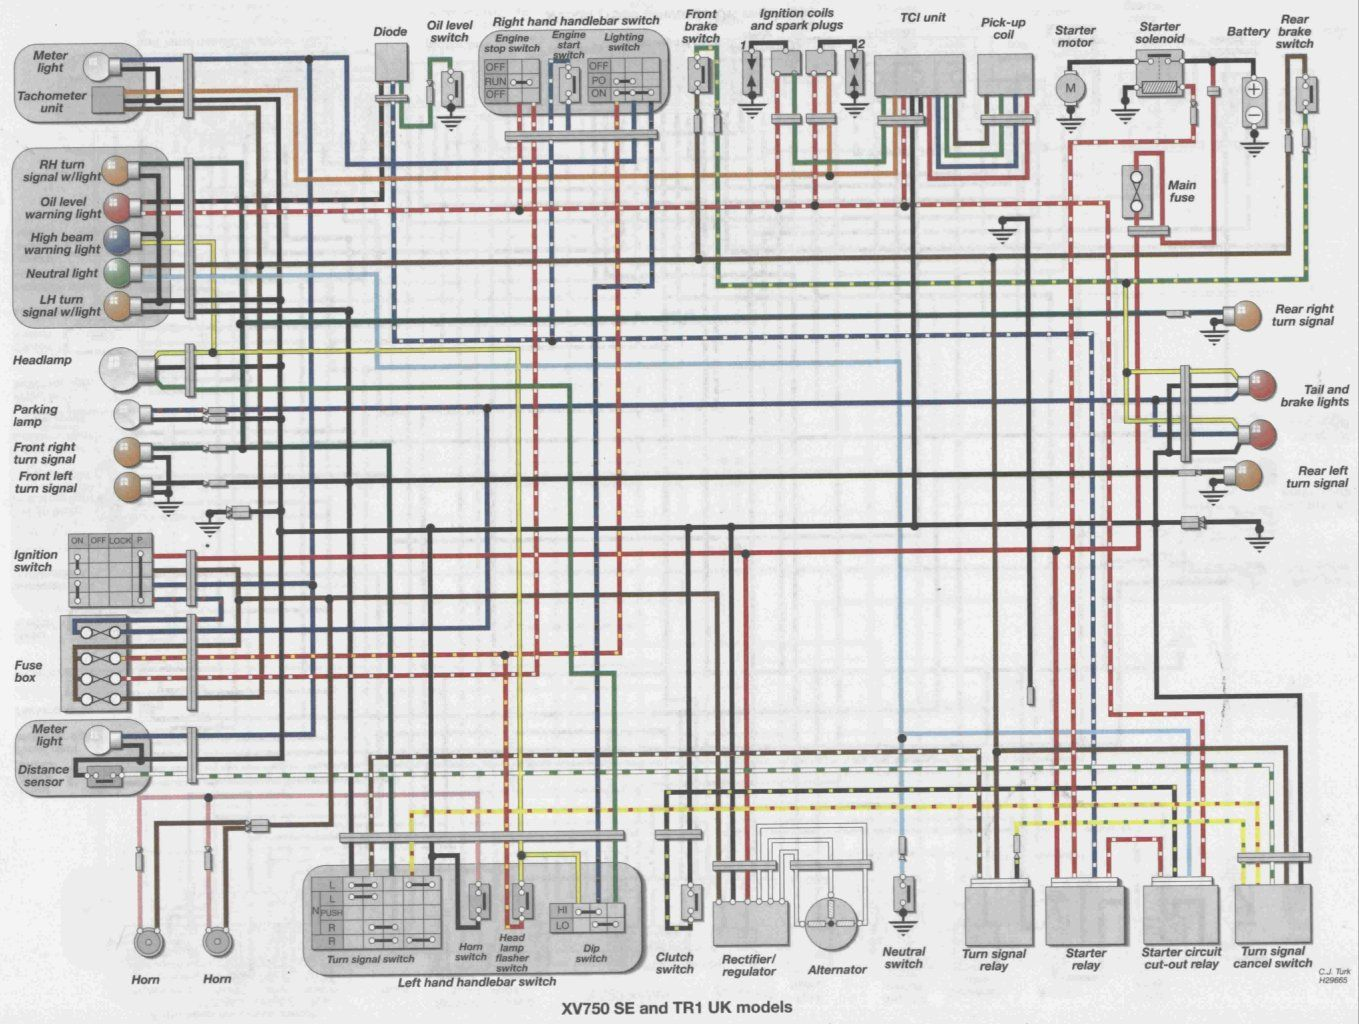 Fabulous Virago Wiring Diagram Wiring Diagram Official Wiring Cloud Oideiuggs Outletorg